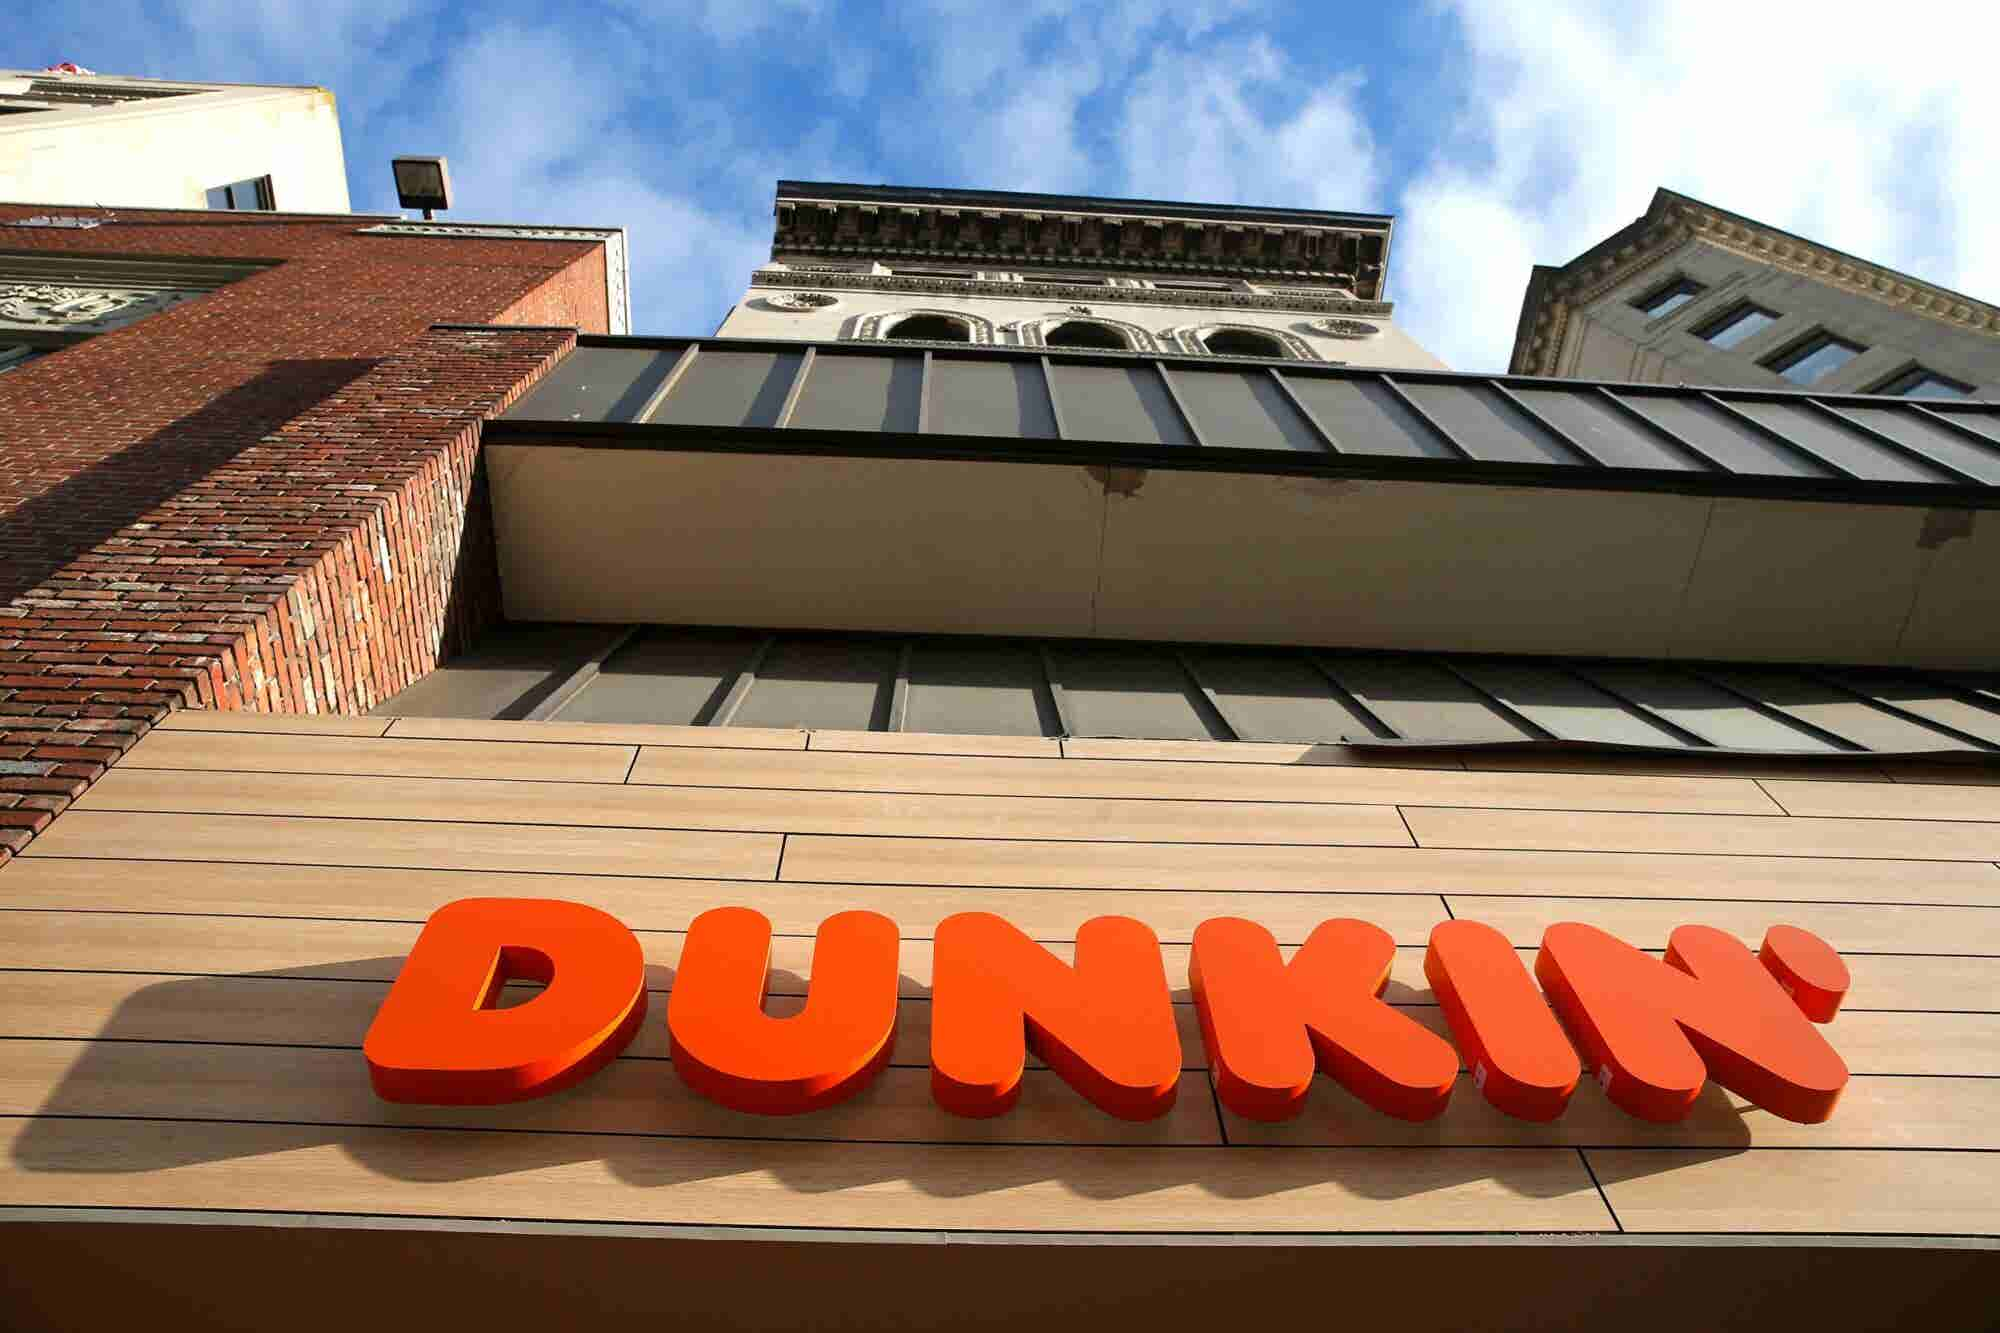 Why Dunkin' Donuts Is Removing 'Donuts' From Its Name